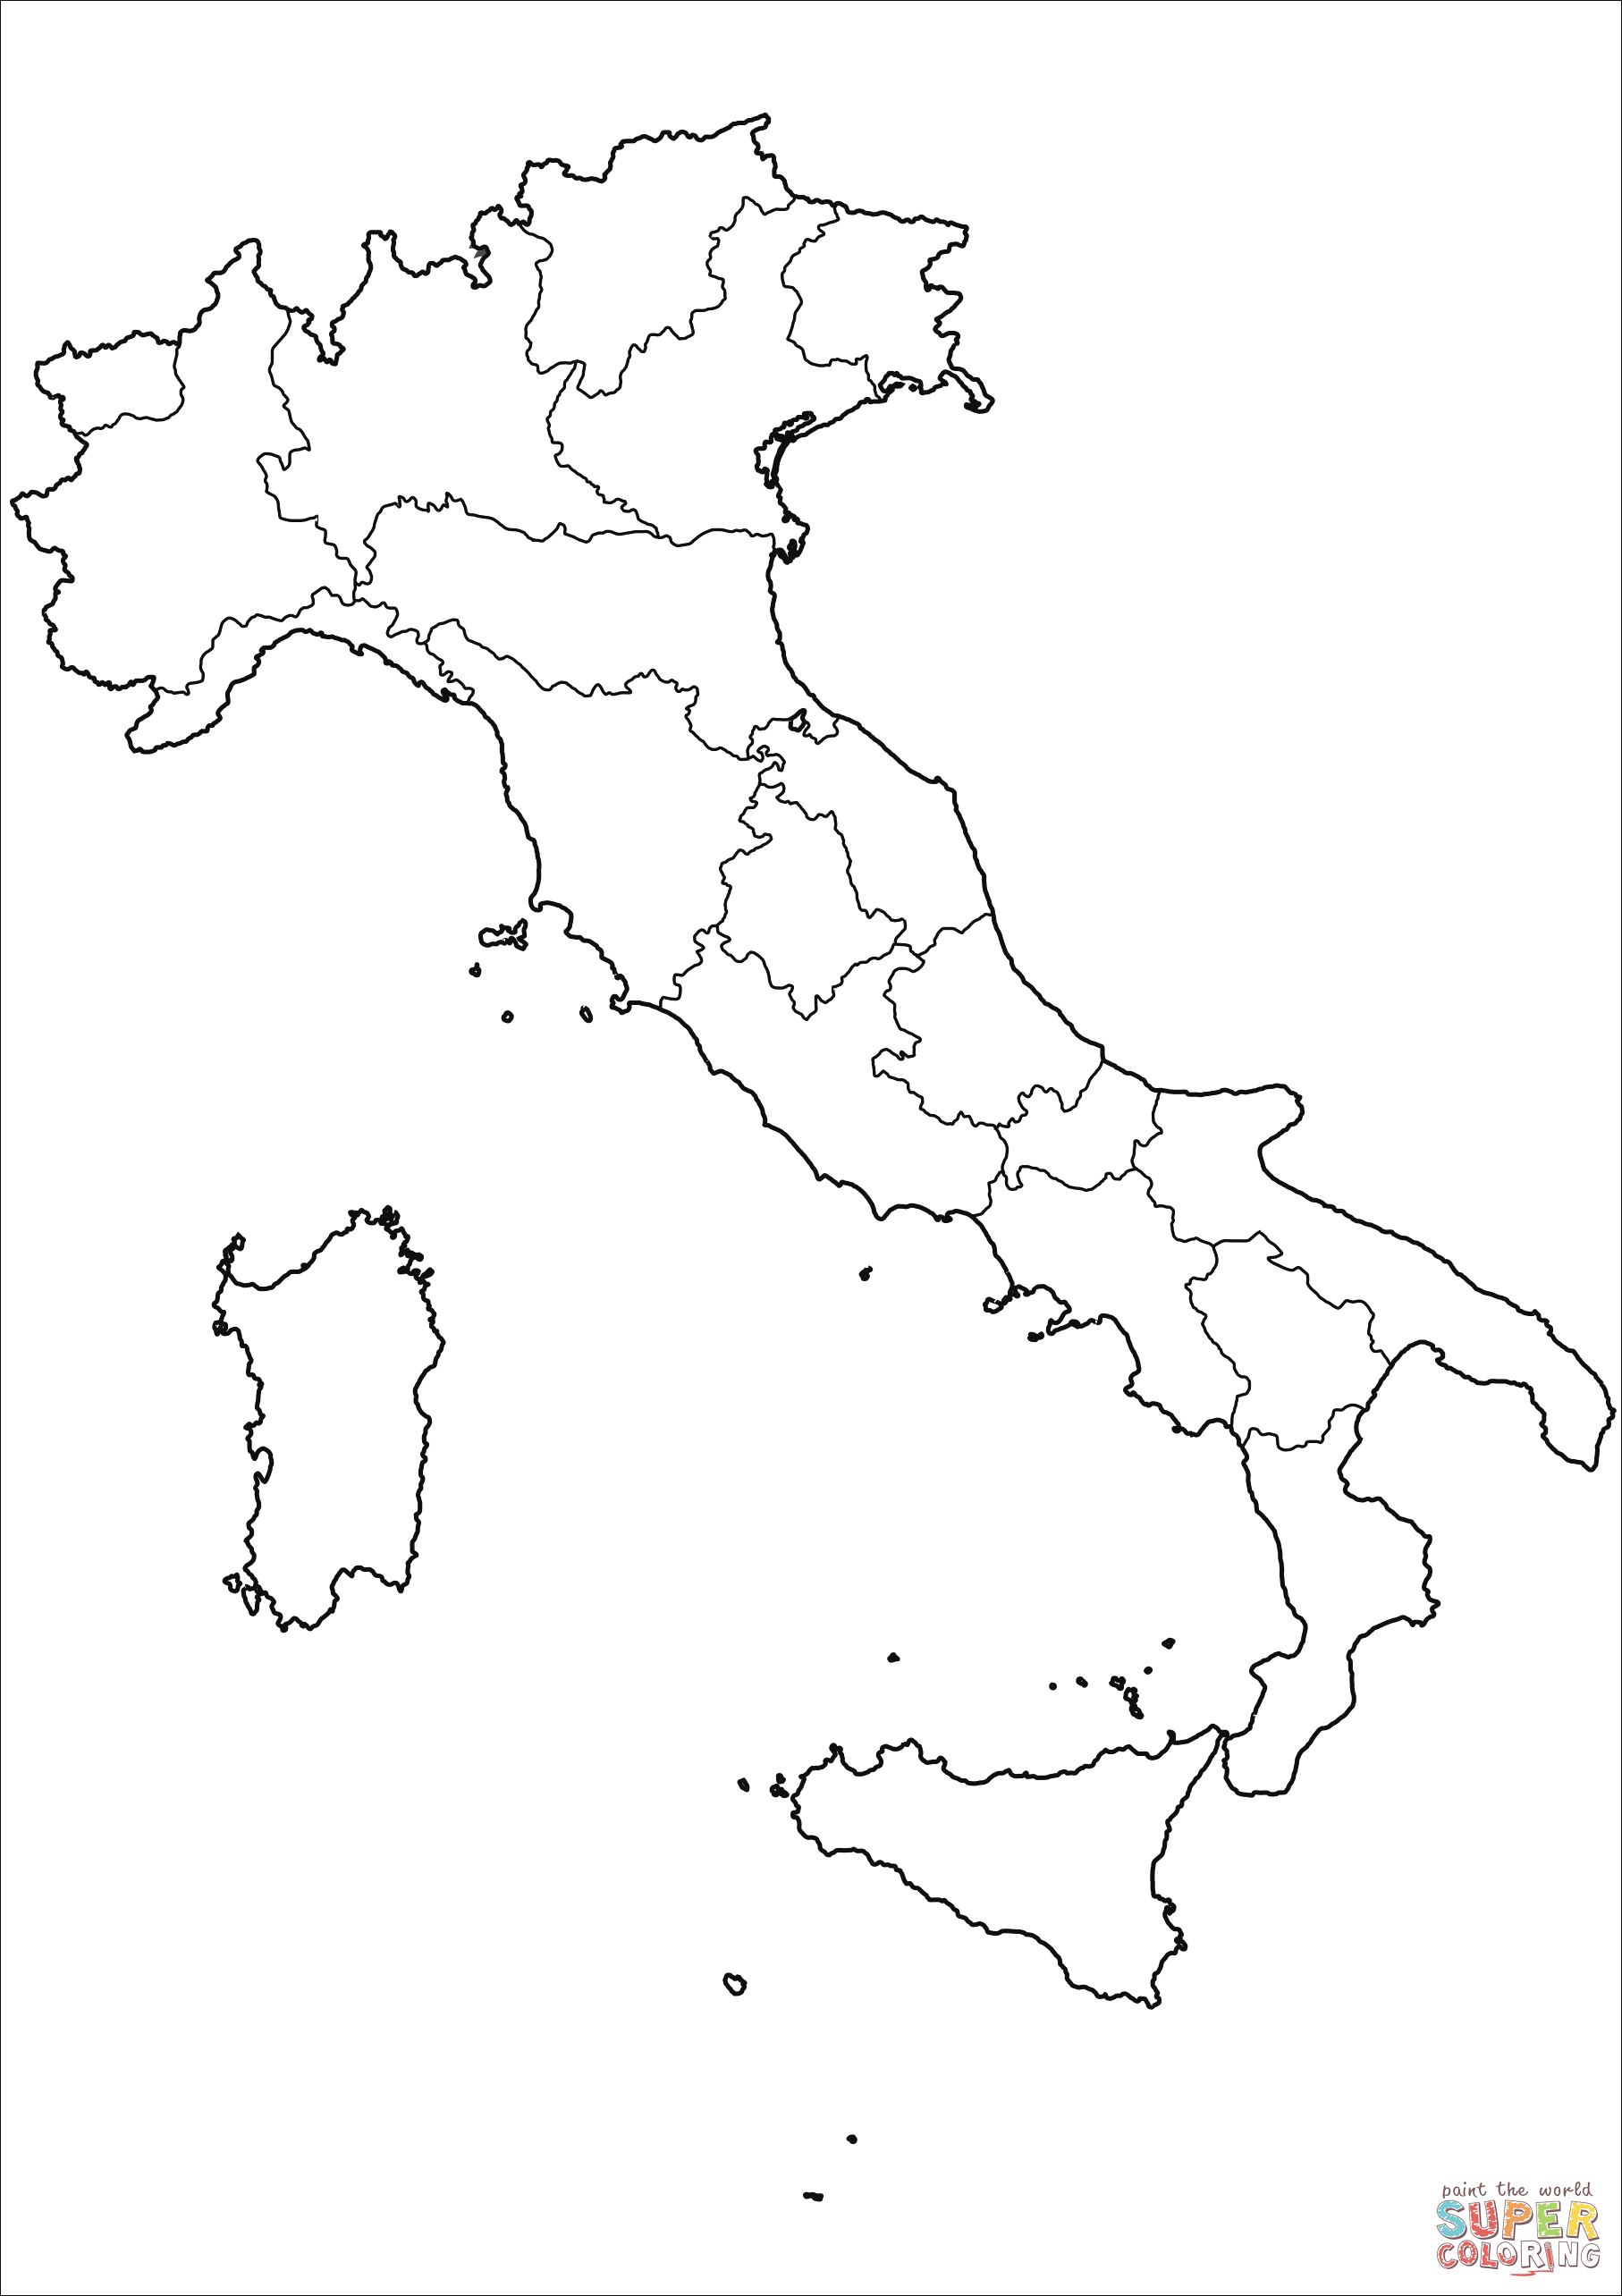 Outline Map Of Italy With Regions Coloring Page | Free Printable - Printable Map Of Italy To Color